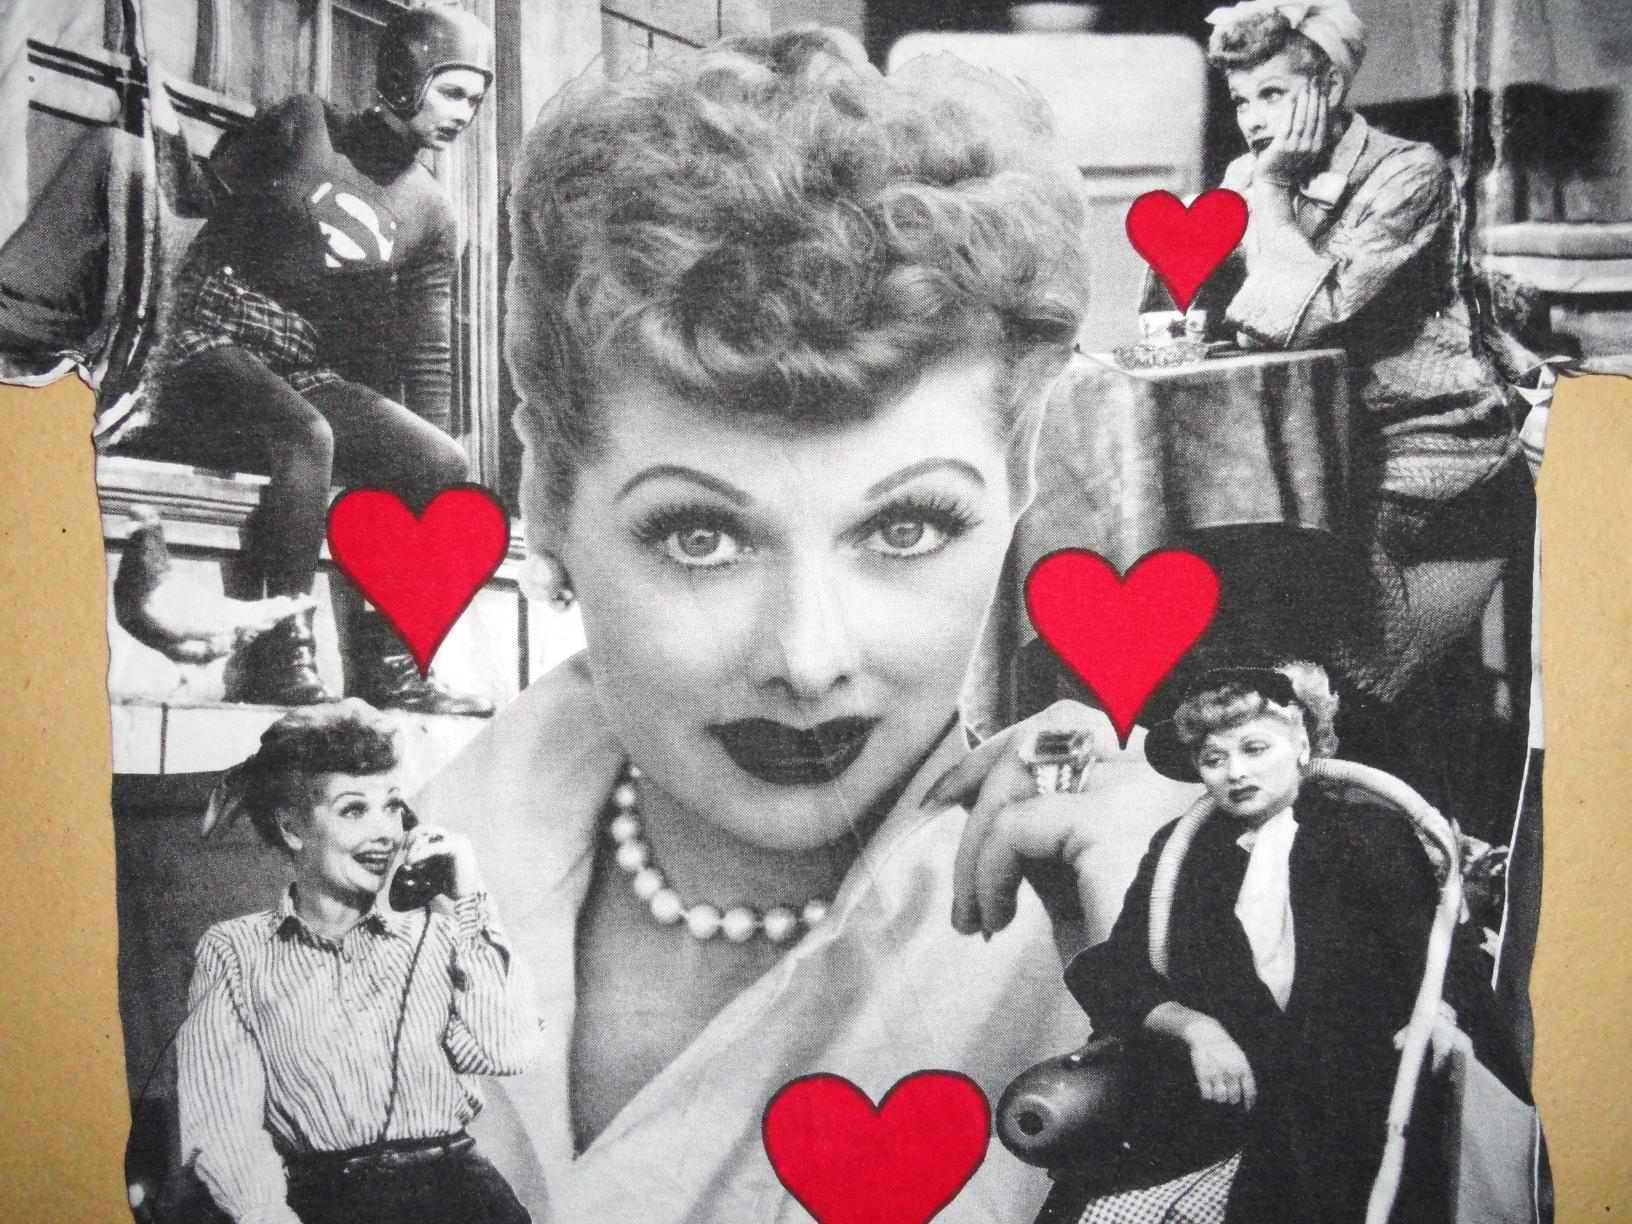 623 East 68th Street Images I Love Lucy Hd Wallpaper And Background Photos